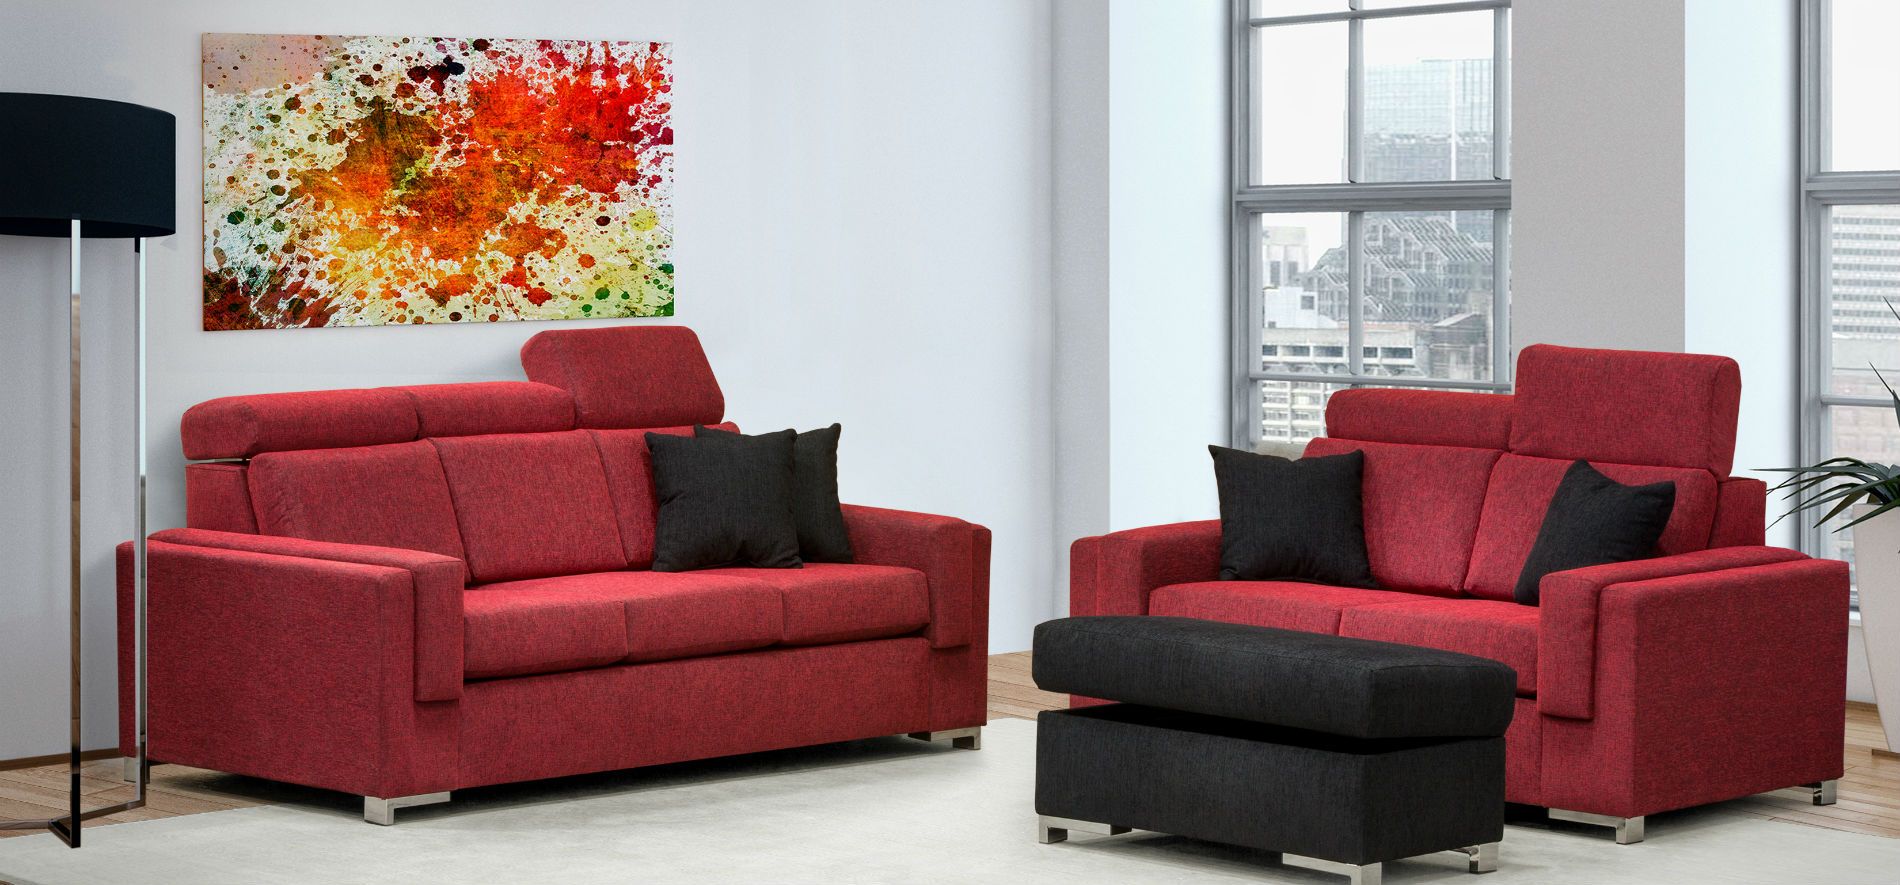 2129 Berlin Sofa and Loveseat